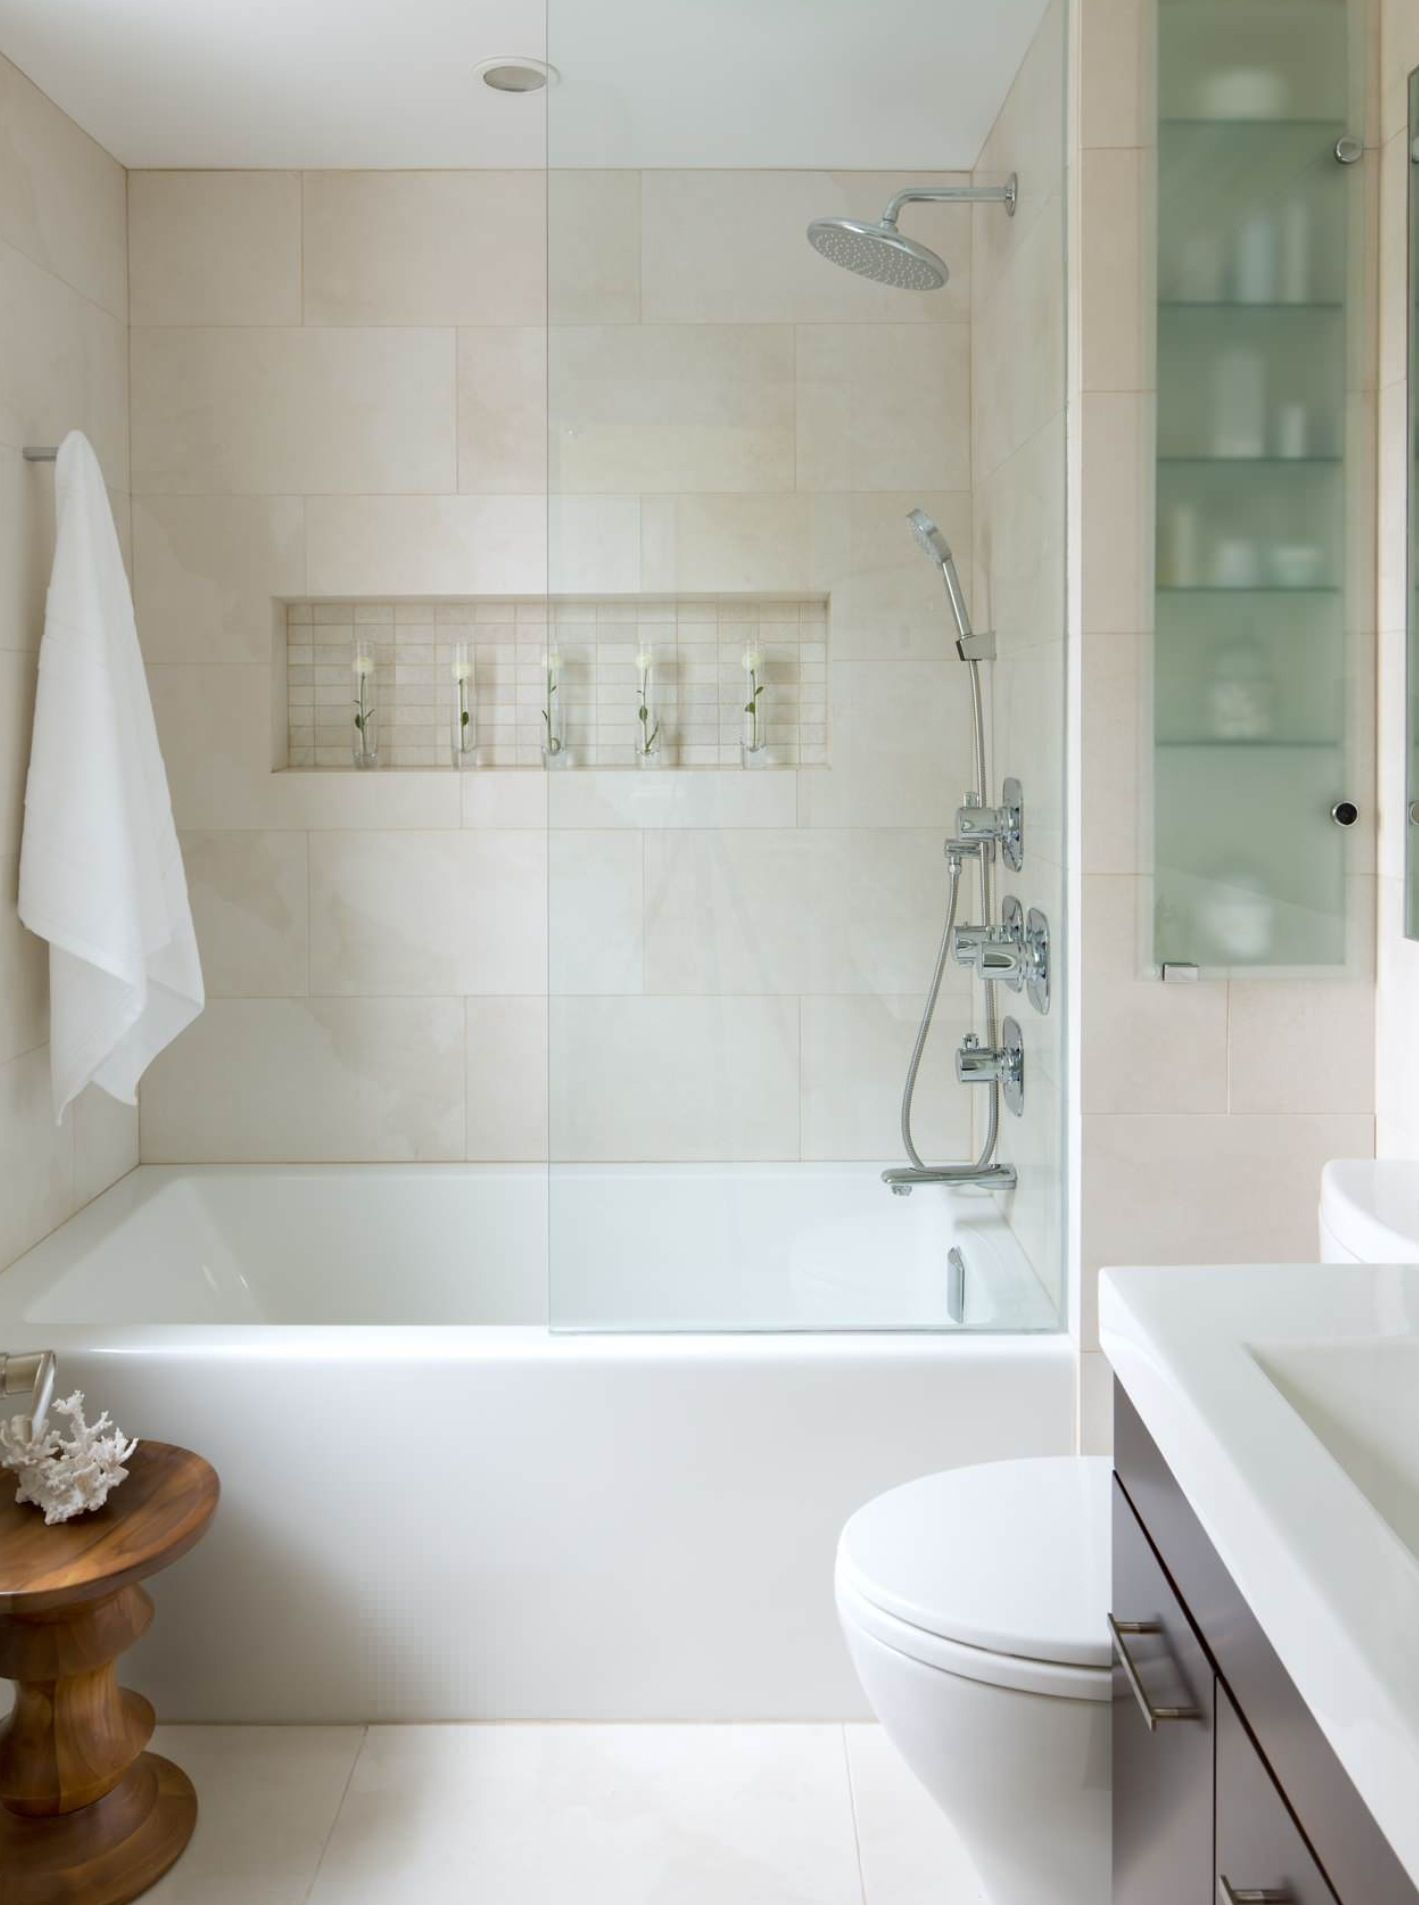 11 Simple Ways To Make A Small Bathroom Look Bigger Small Space